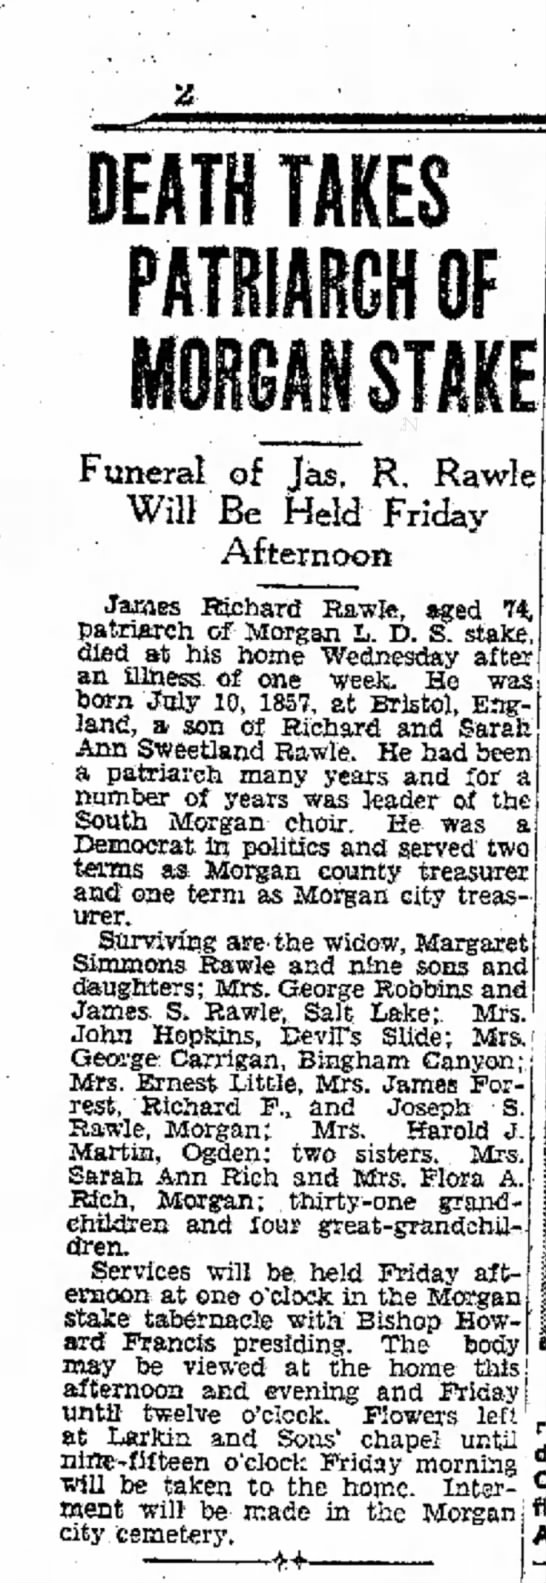 1931 Rawle, James Richard's obit OSE Dec 10 p. 2 - DEATH TAKES PAIfMRGHW Funeral of Jas, R. Will...